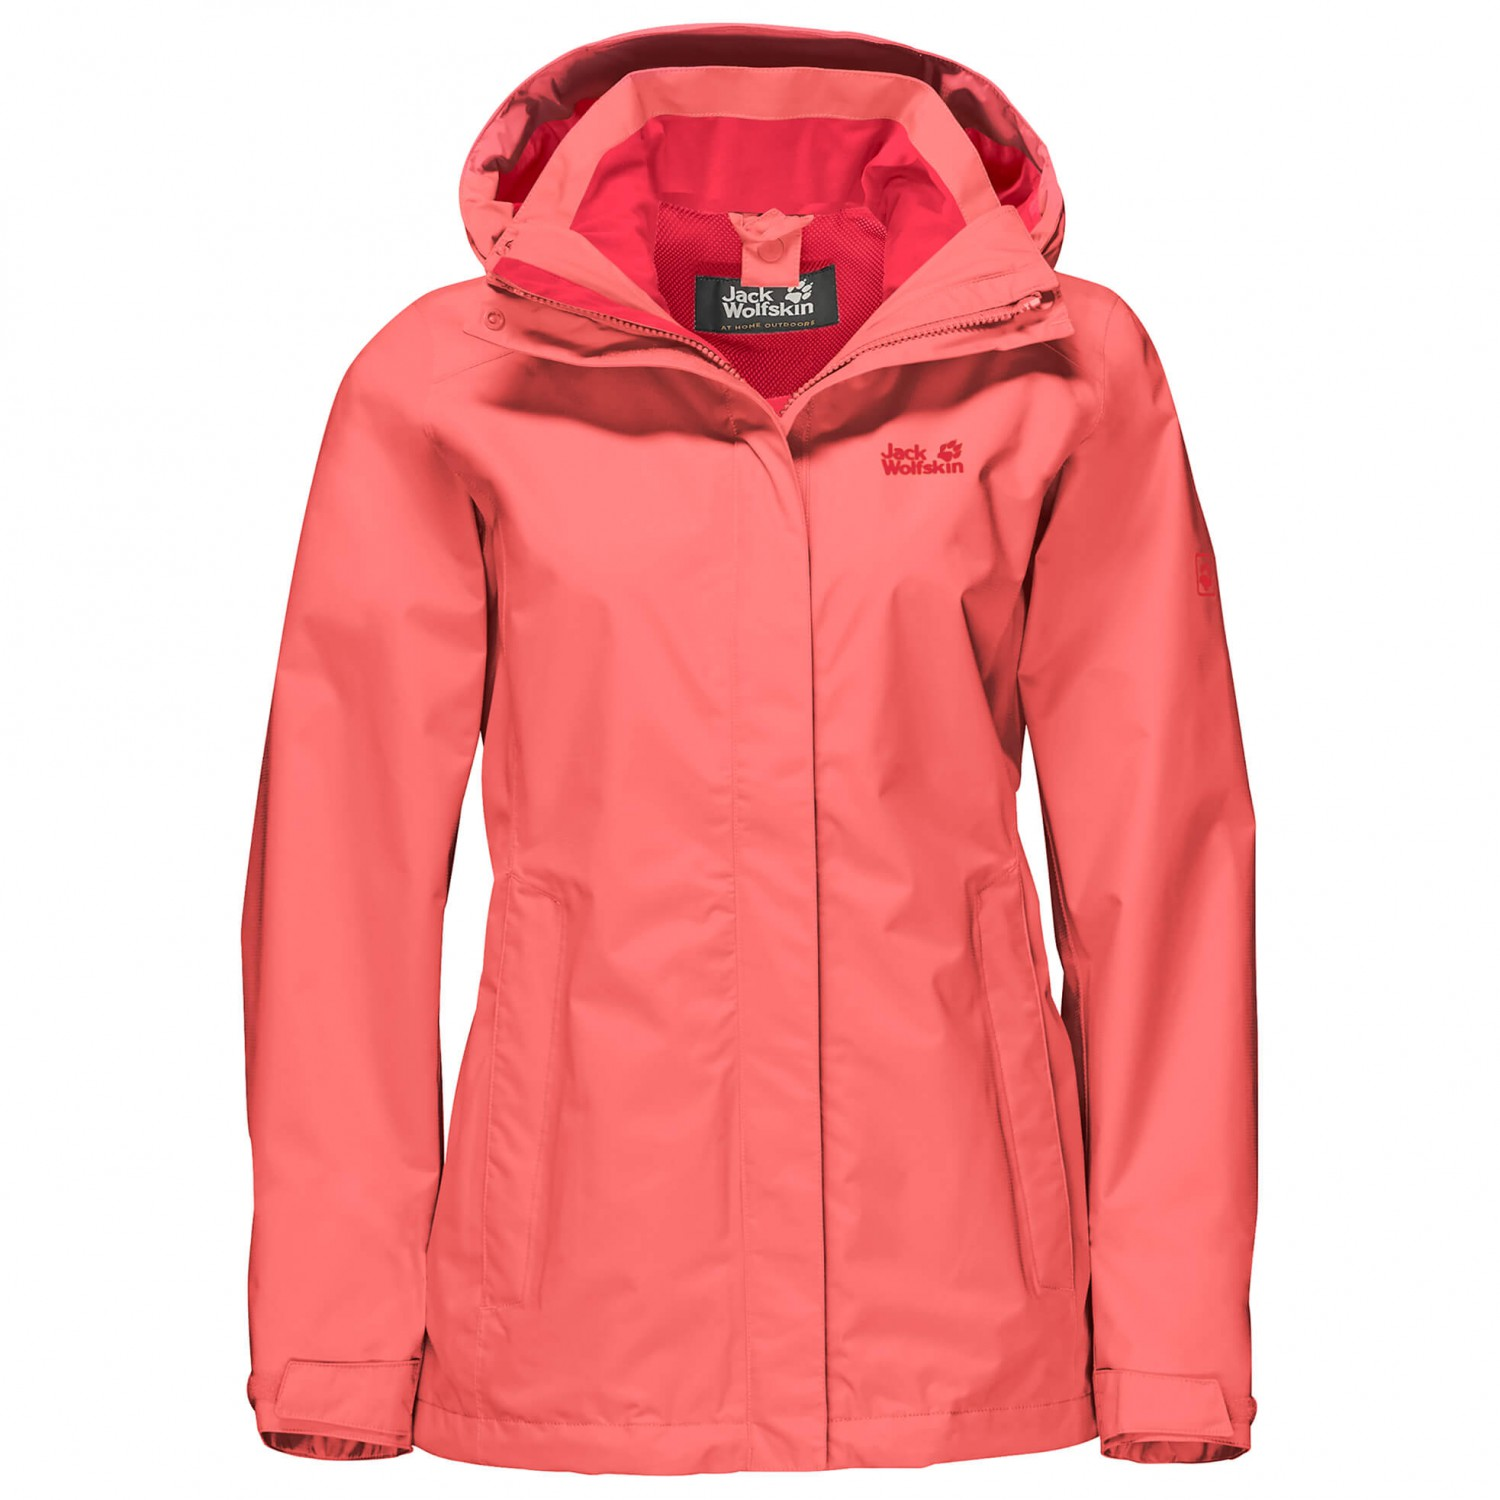 reputable site 1a1cd d4acc Jack Wolfskin - Women's Seven Lakes Jacket - Midnight Blue | XS